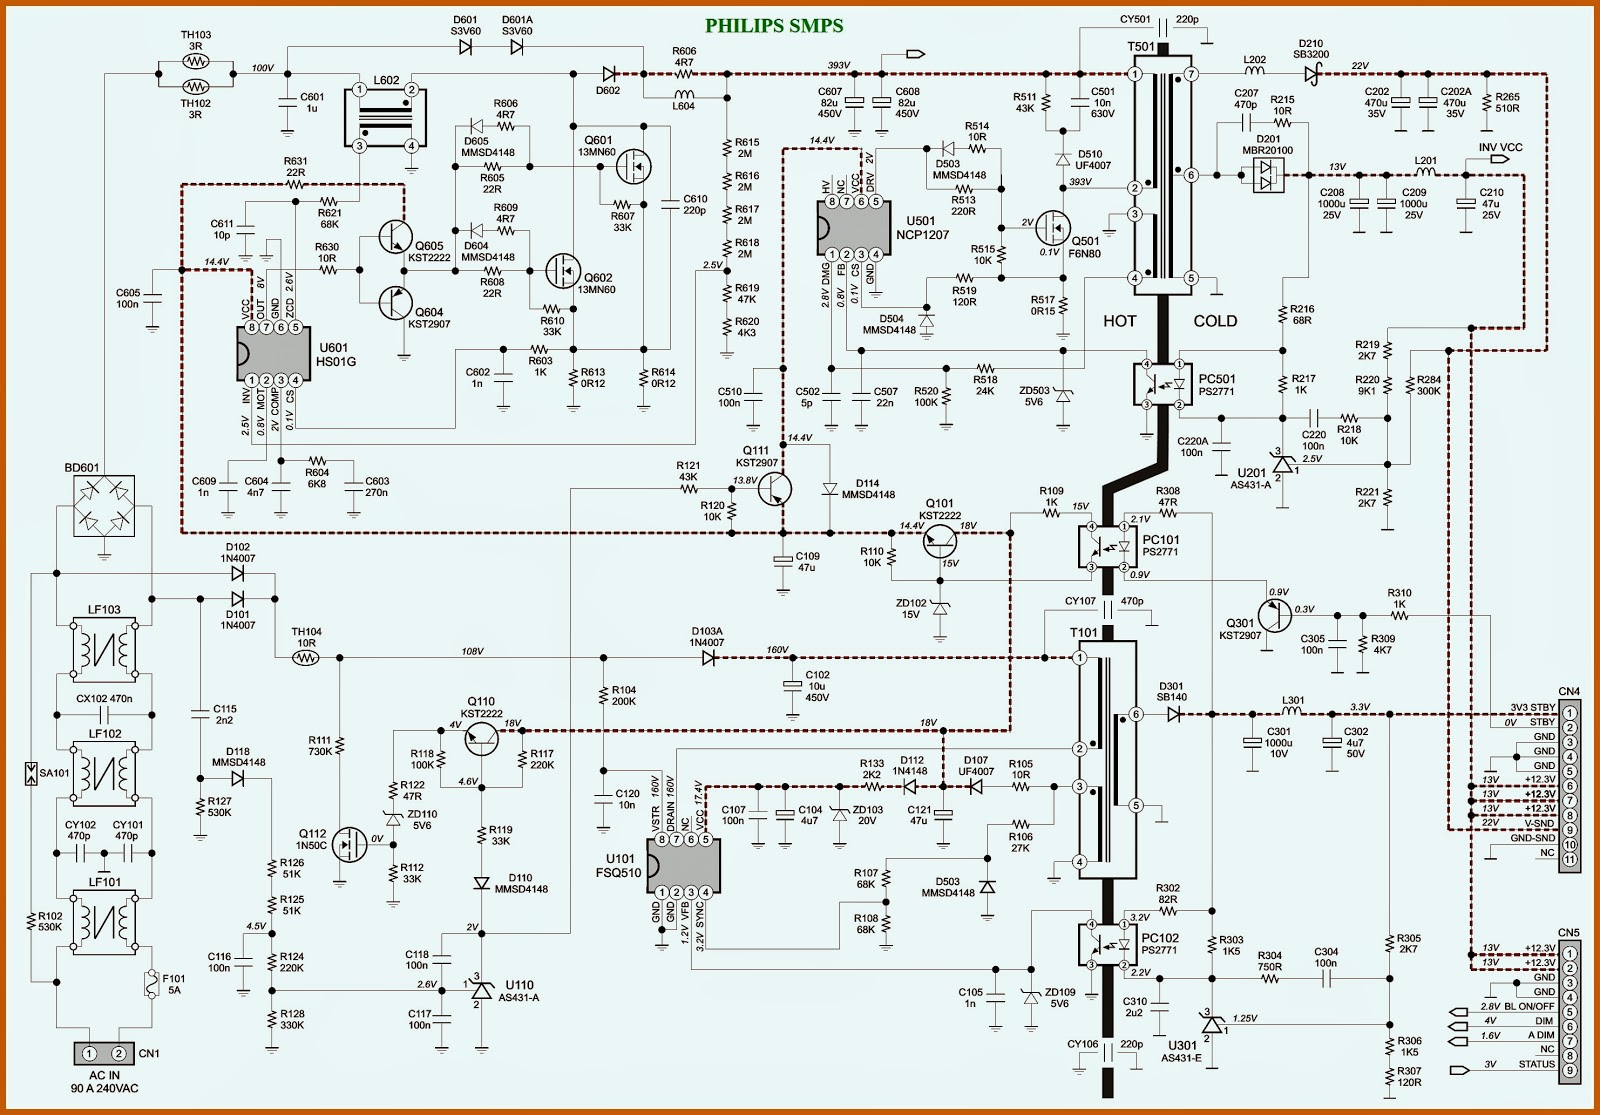 Contemporary Str W6553 Tv Circuit Diagram Power Supply Illustration ...